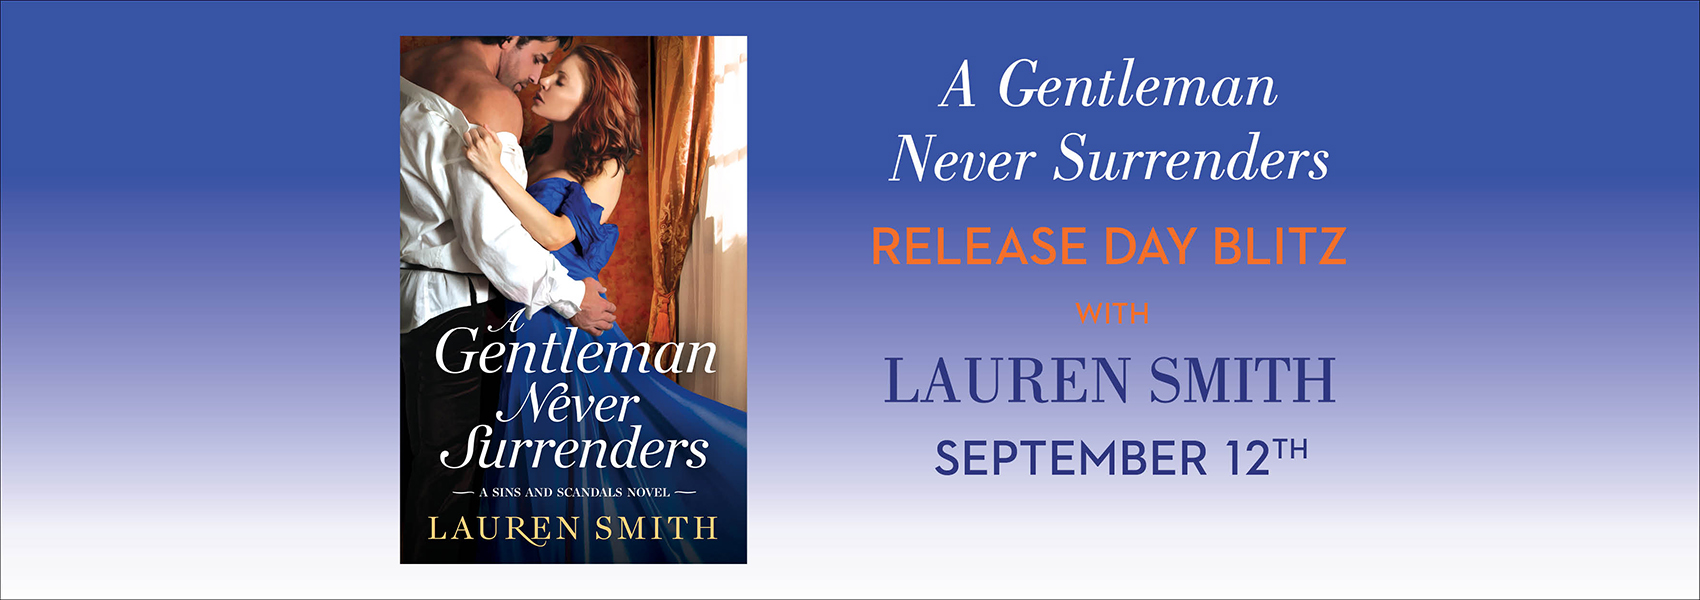 win 1 of 15 free ebook downloads of A Gentleman Never Surrenders!